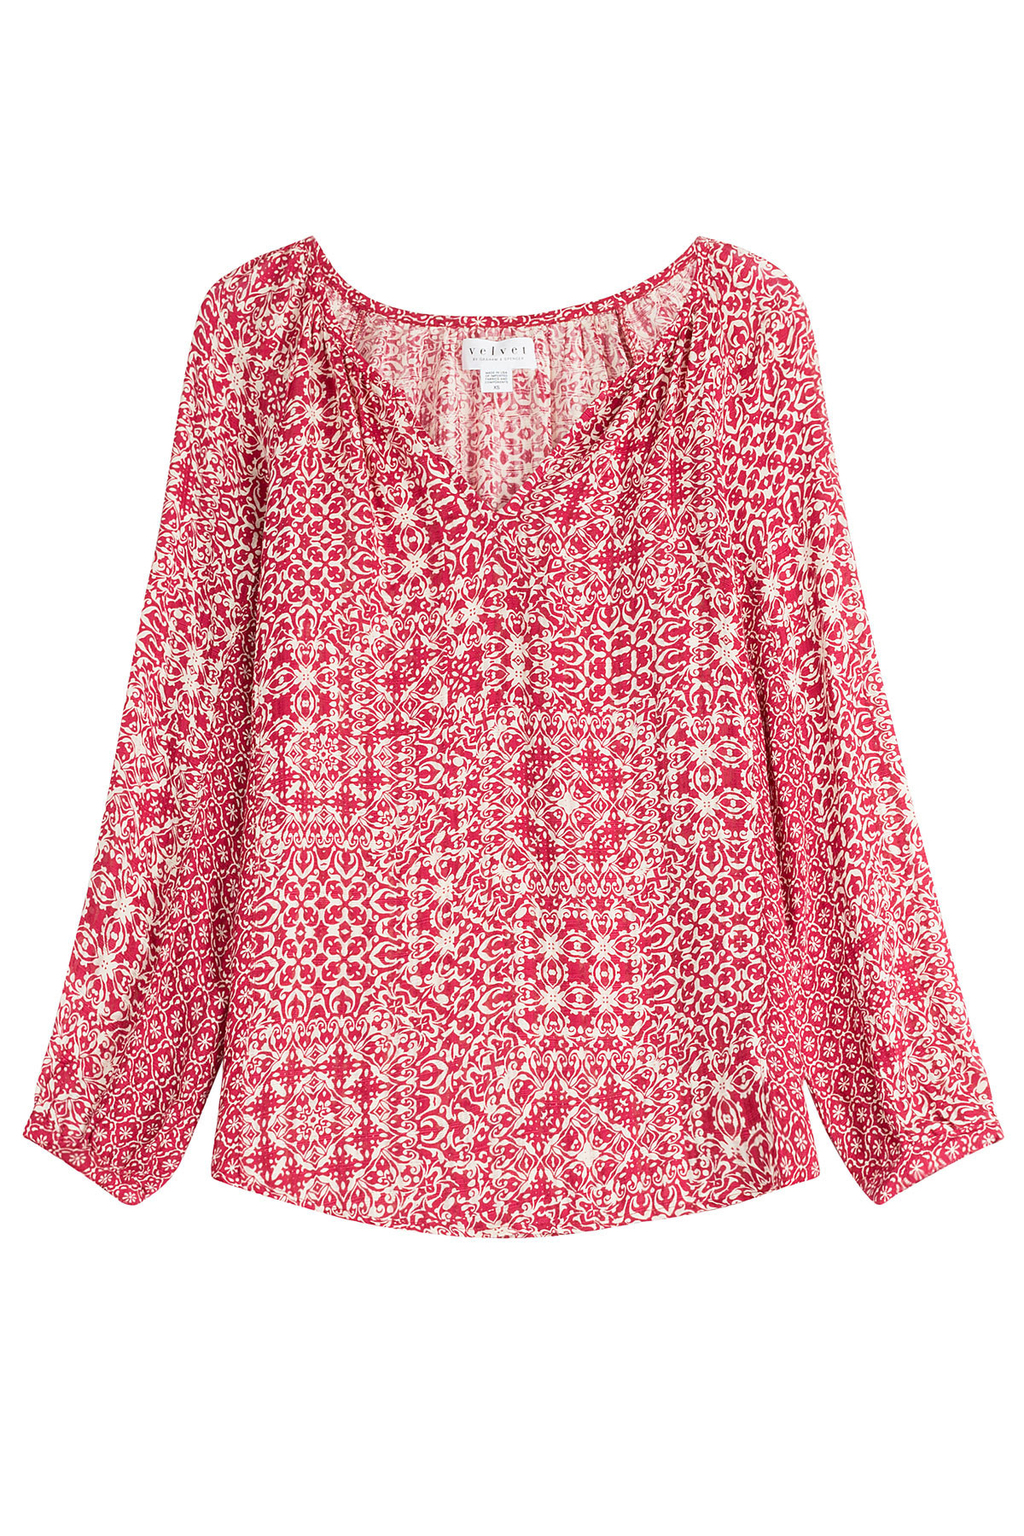 Printed Tunic Top Red - neckline: v-neck; secondary colour: white; predominant colour: true red; occasions: casual; length: standard; style: top; fibres: viscose/rayon - 100%; fit: body skimming; sleeve length: long sleeve; sleeve style: standard; pattern type: fabric; pattern: patterned/print; texture group: jersey - stretchy/drapey; multicoloured: multicoloured; season: s/s 2016